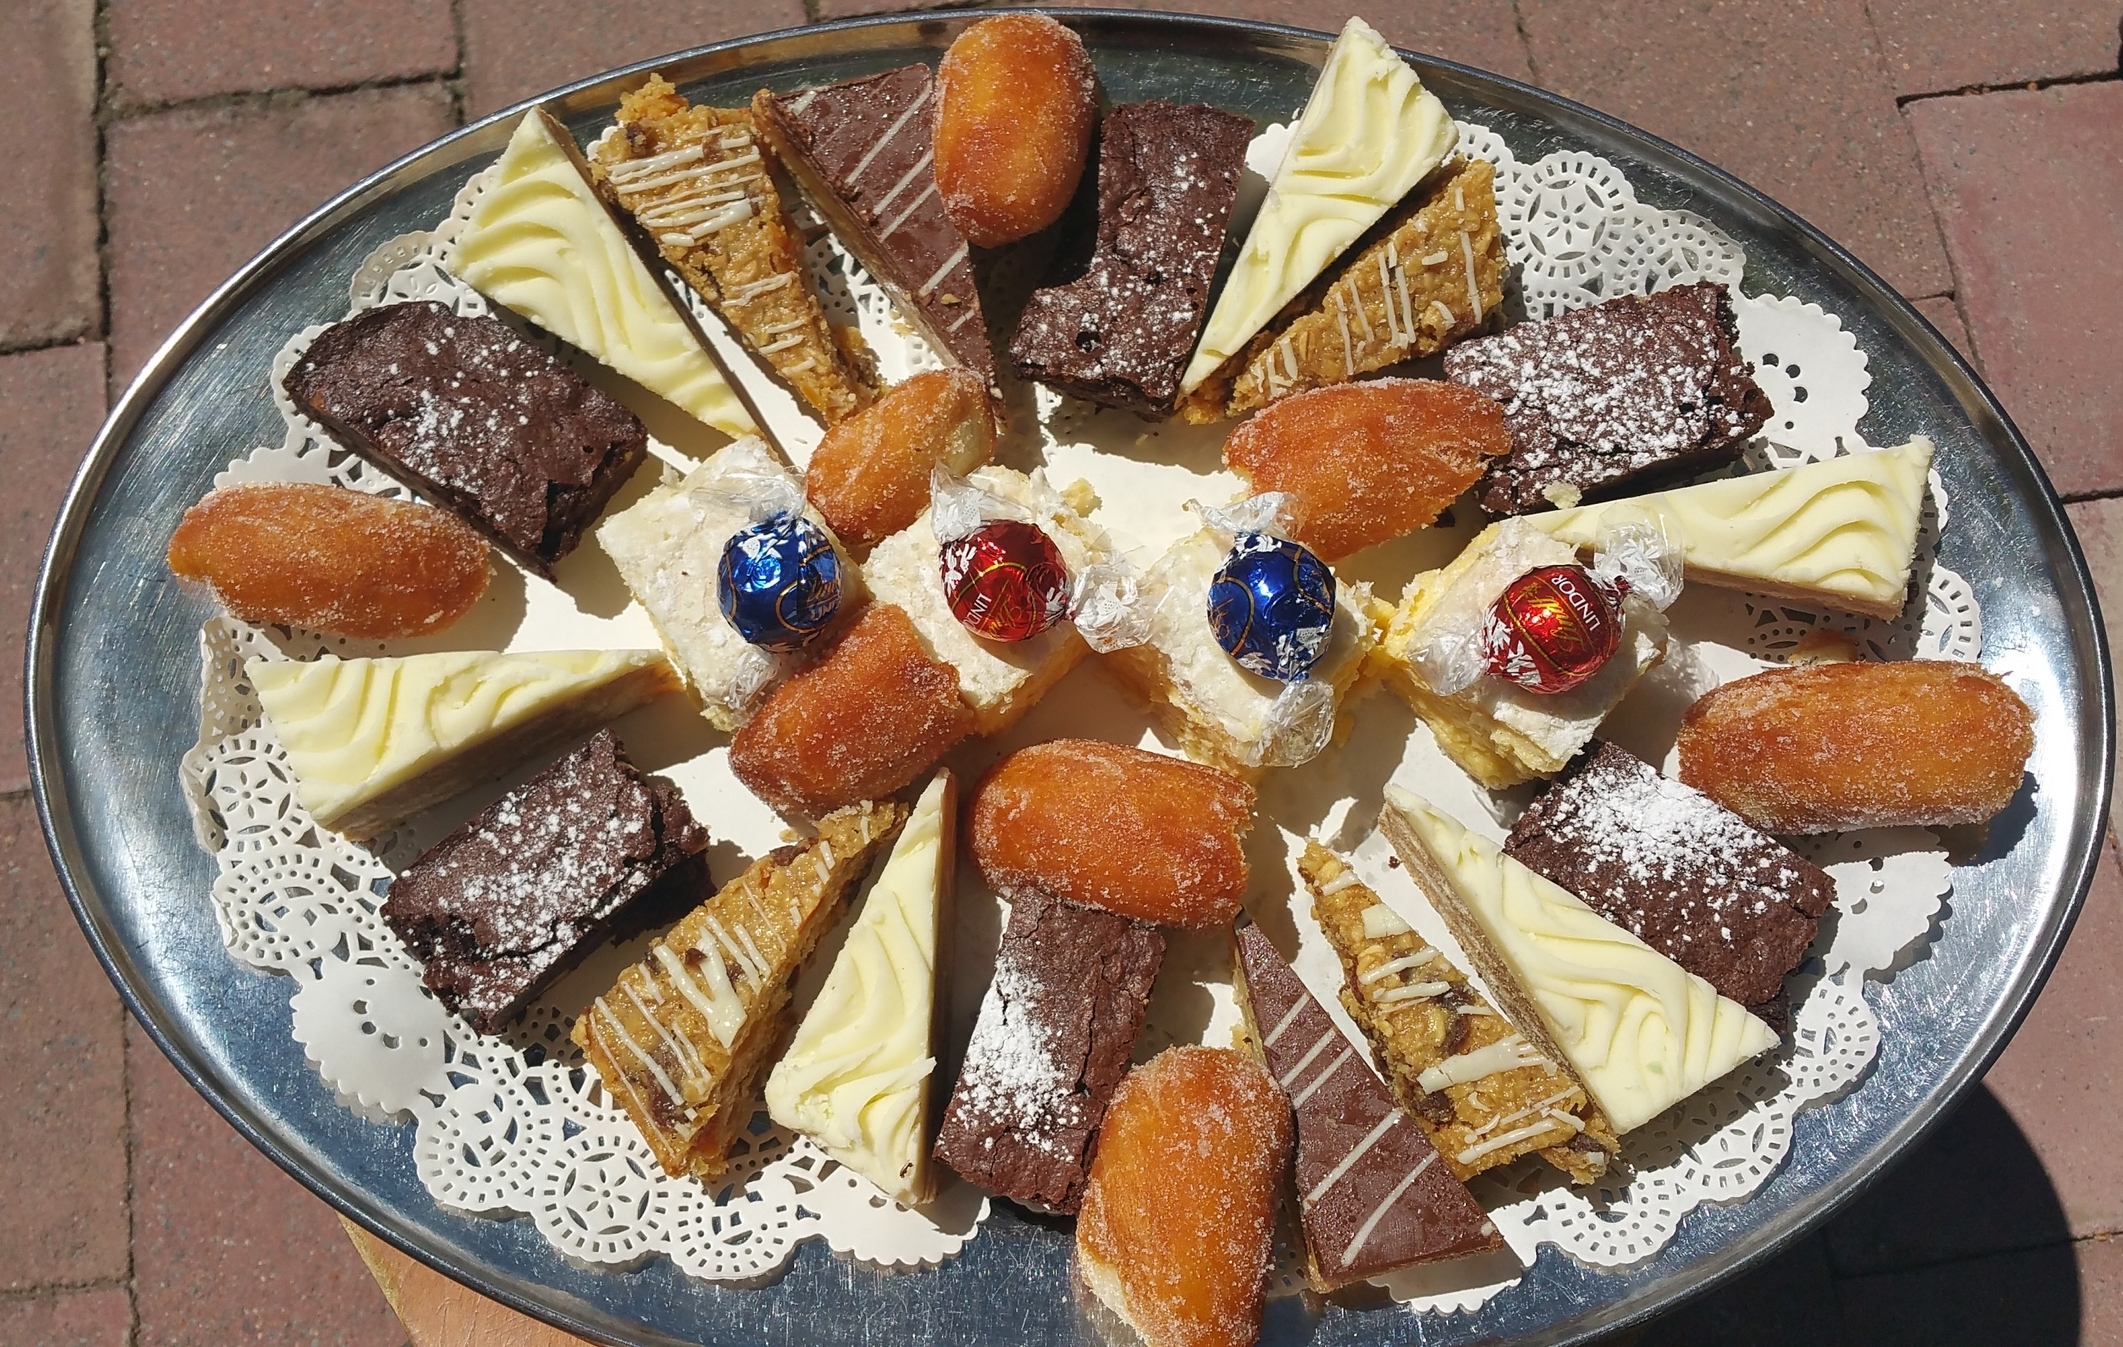 A variation of our Cakes & Slices Platter with Chocolates